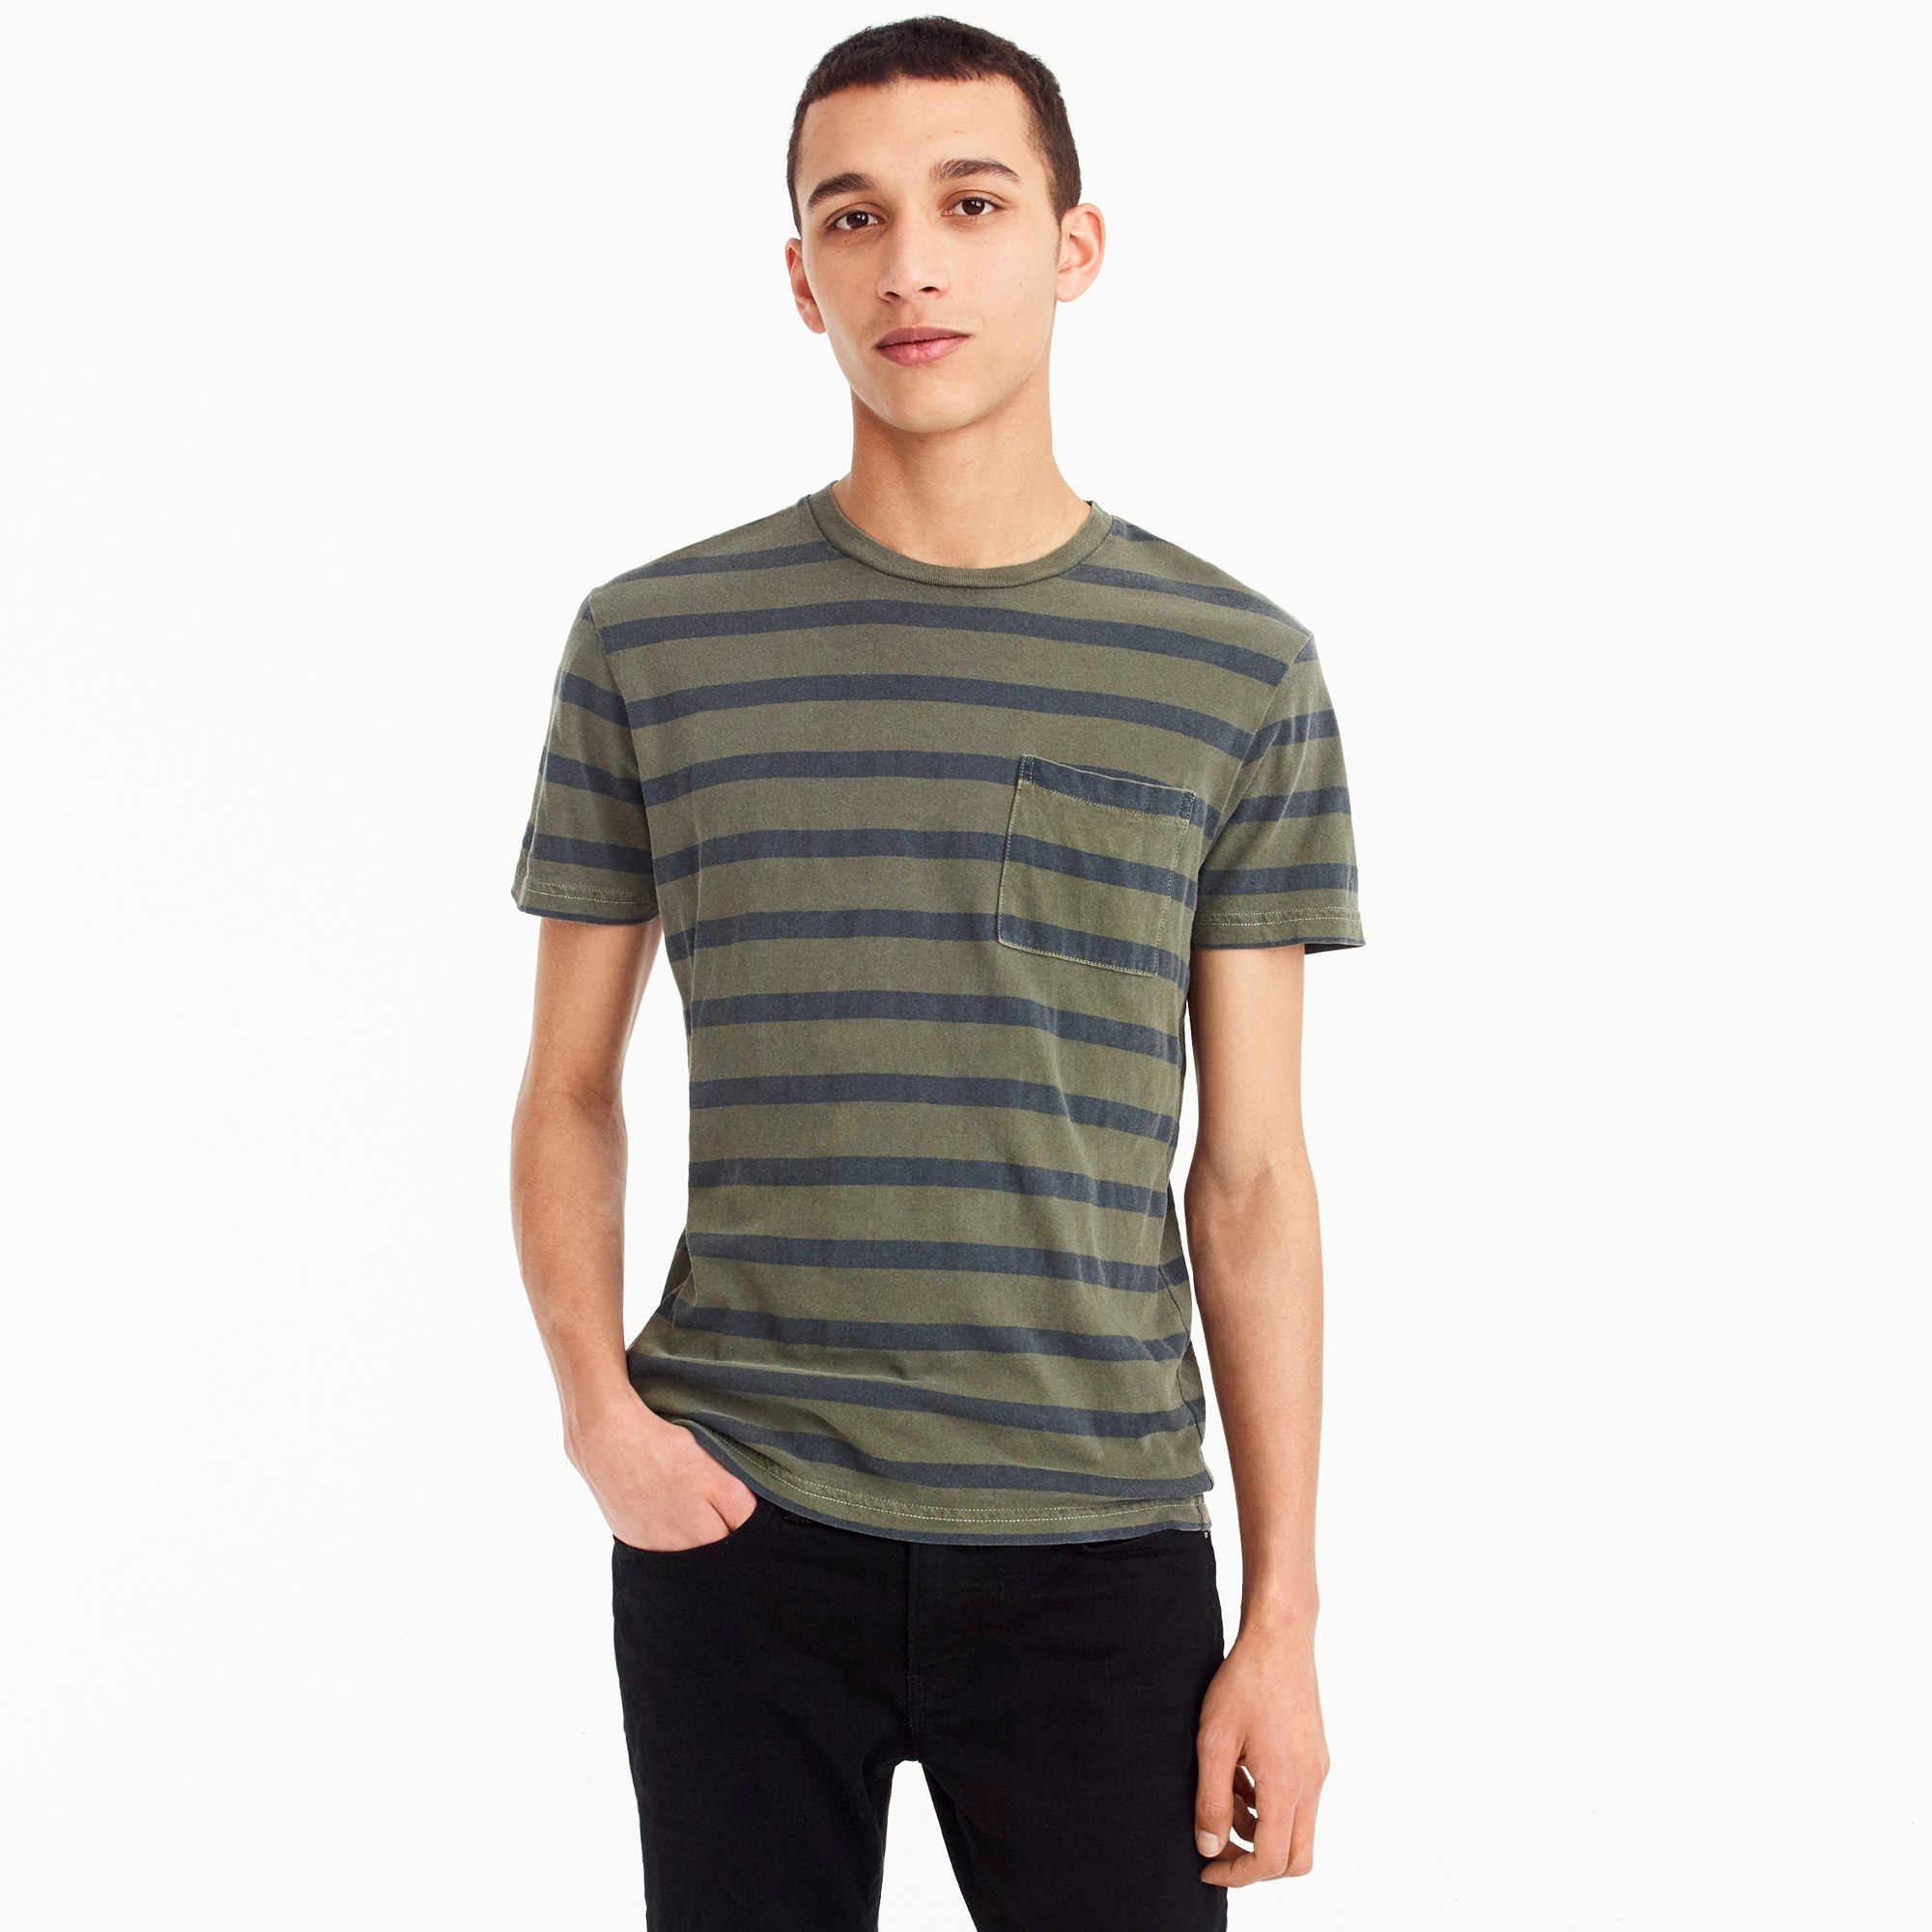 Image 2 for Garment-dyed T-shirt in harbor stripe